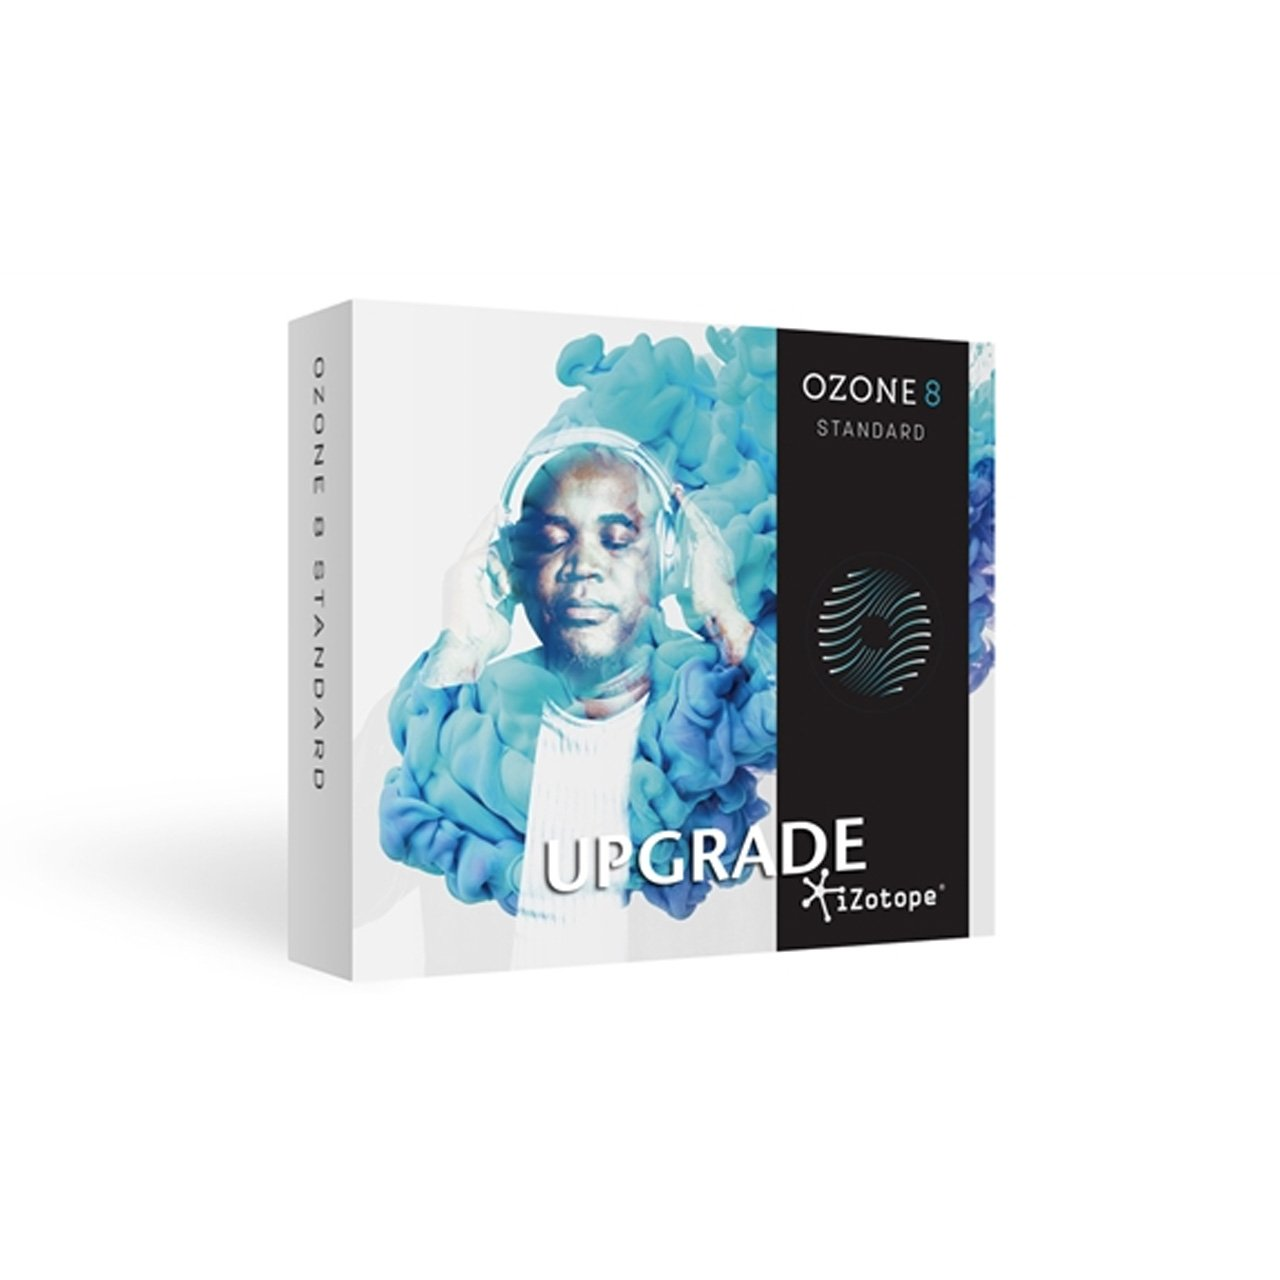 Plug-in Effects - IZotope Ozone 8 STANDARD Mastering Software (UPGRADE)